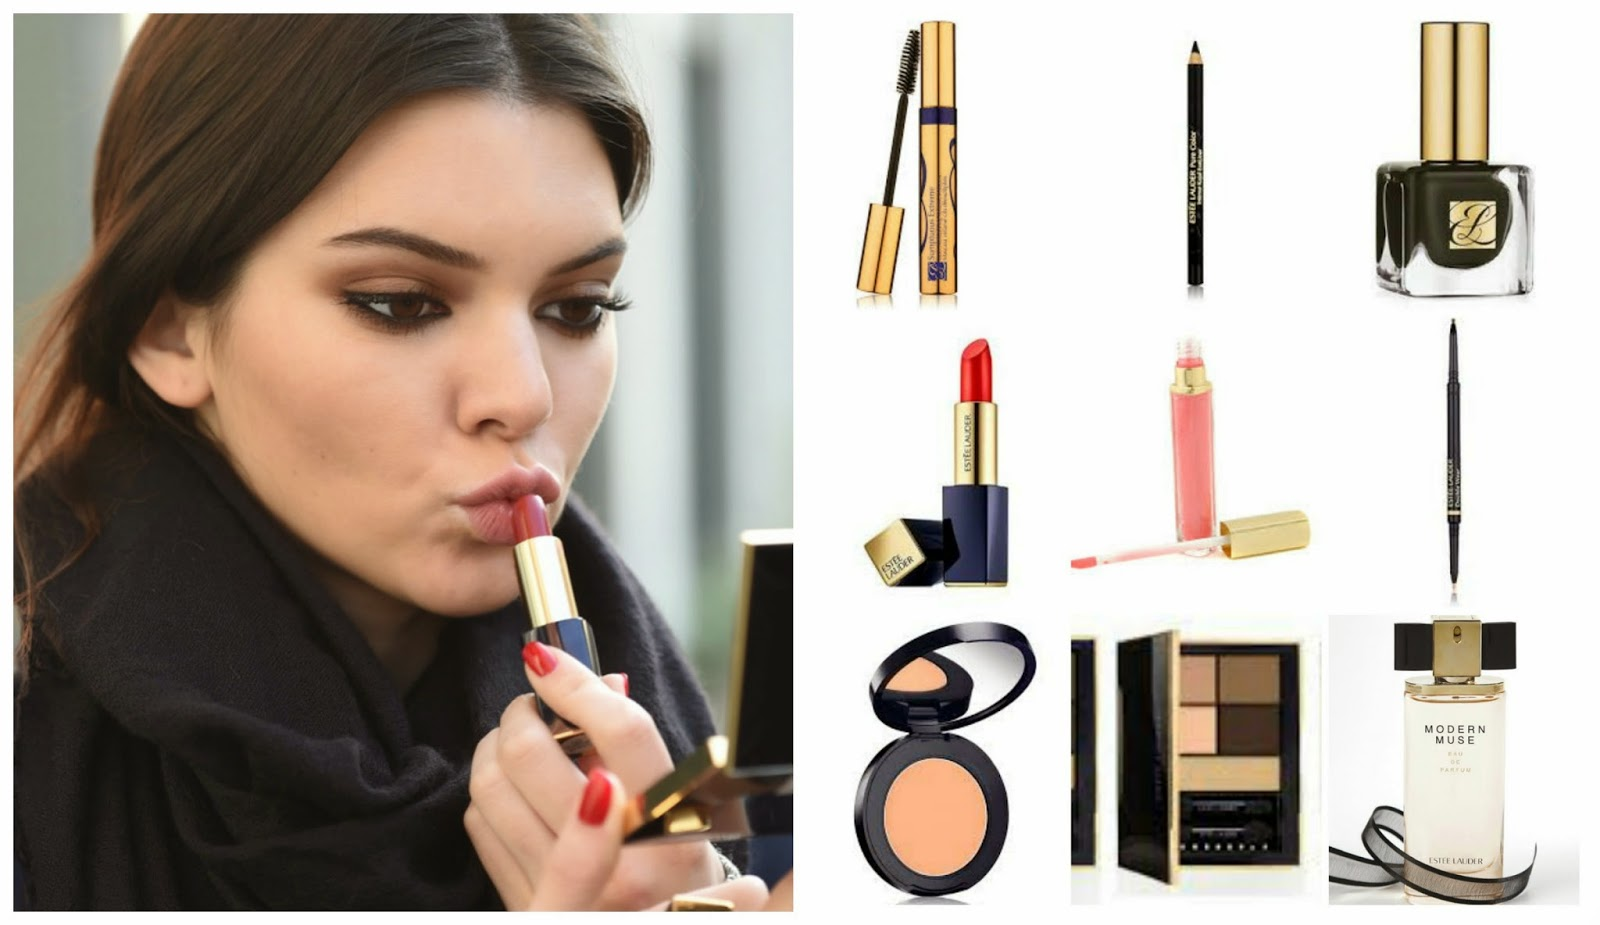 Kendall Jenner's Estee Lauder Beauty Favourites